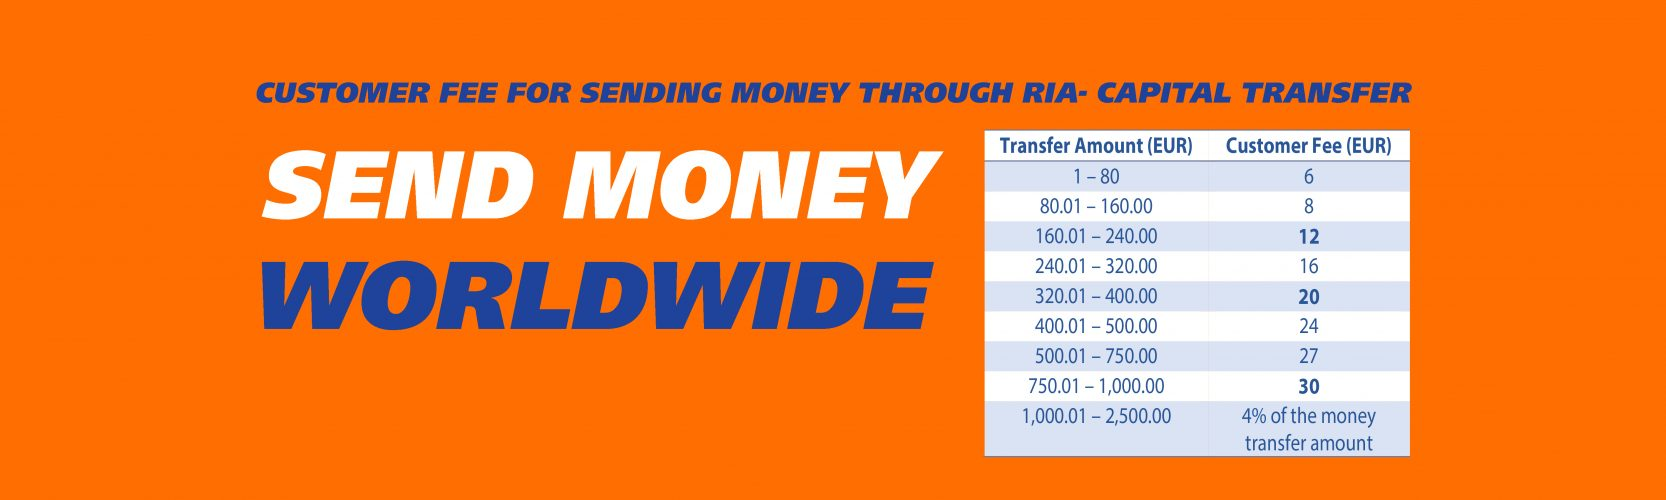 Capital Transfer Ria Macedonia Customer Fee For Sending Money Worldwide